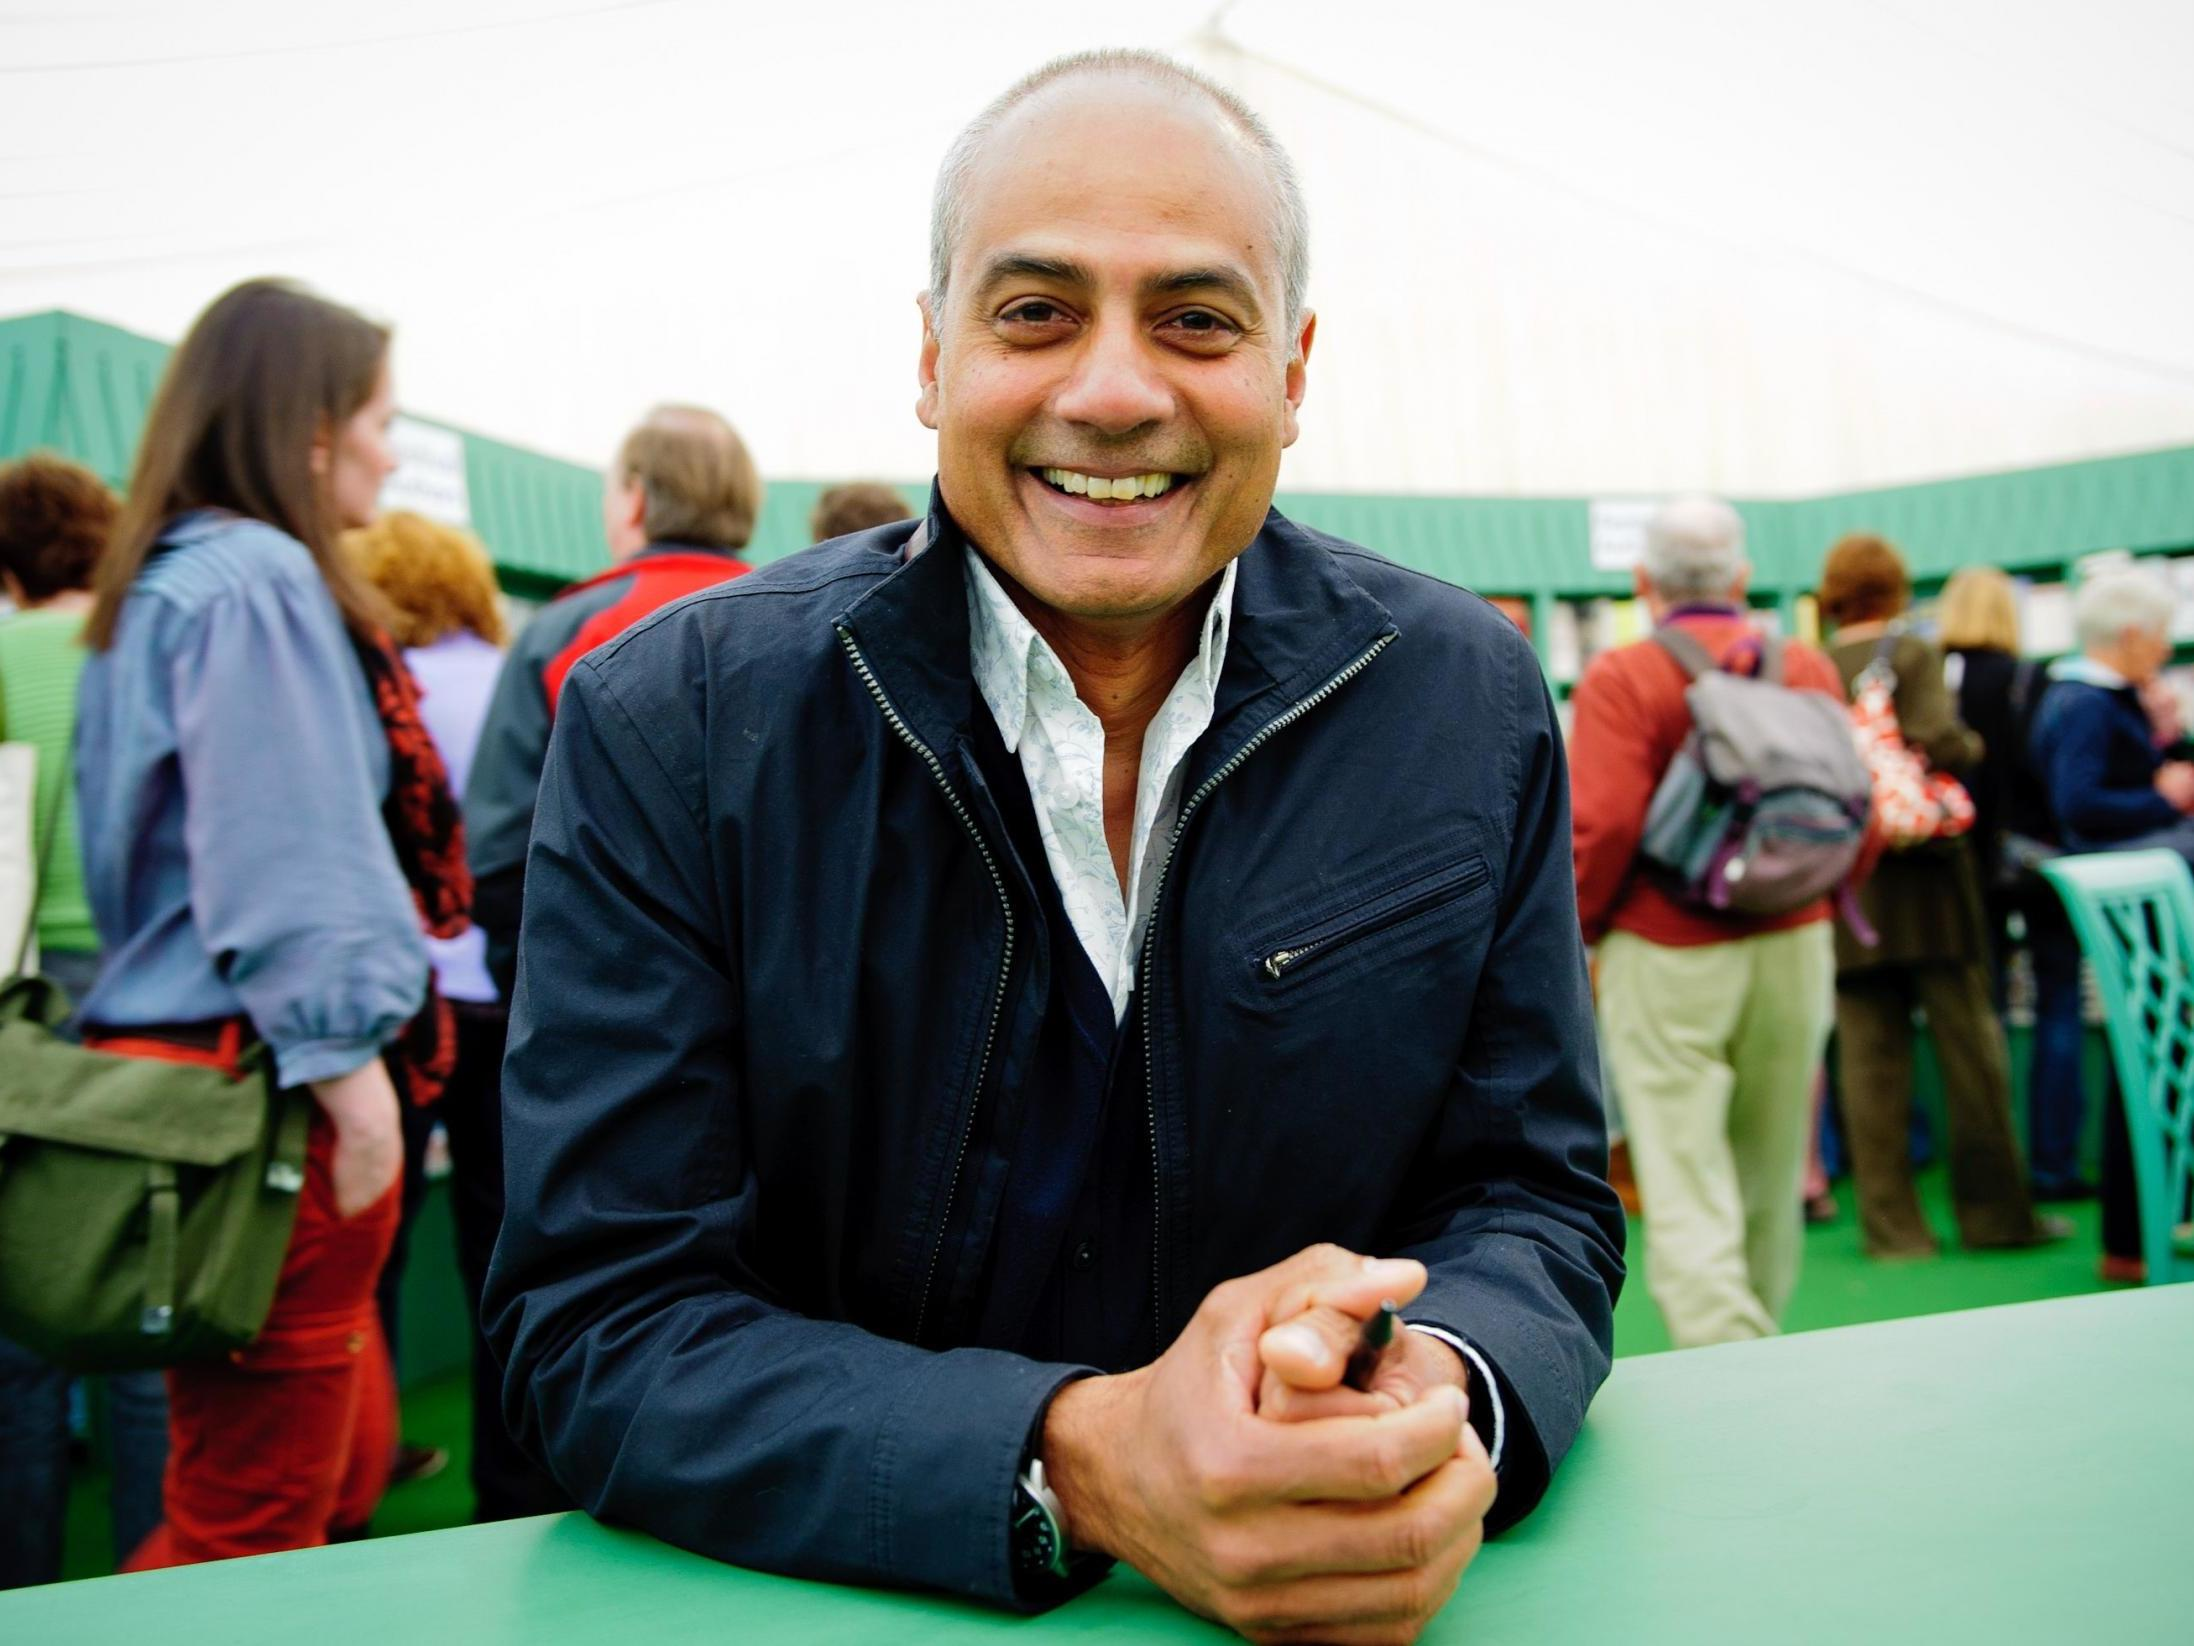 BBC's George Alagiah reveals why he didn't check survival statistics after bowel cancer diagnosis